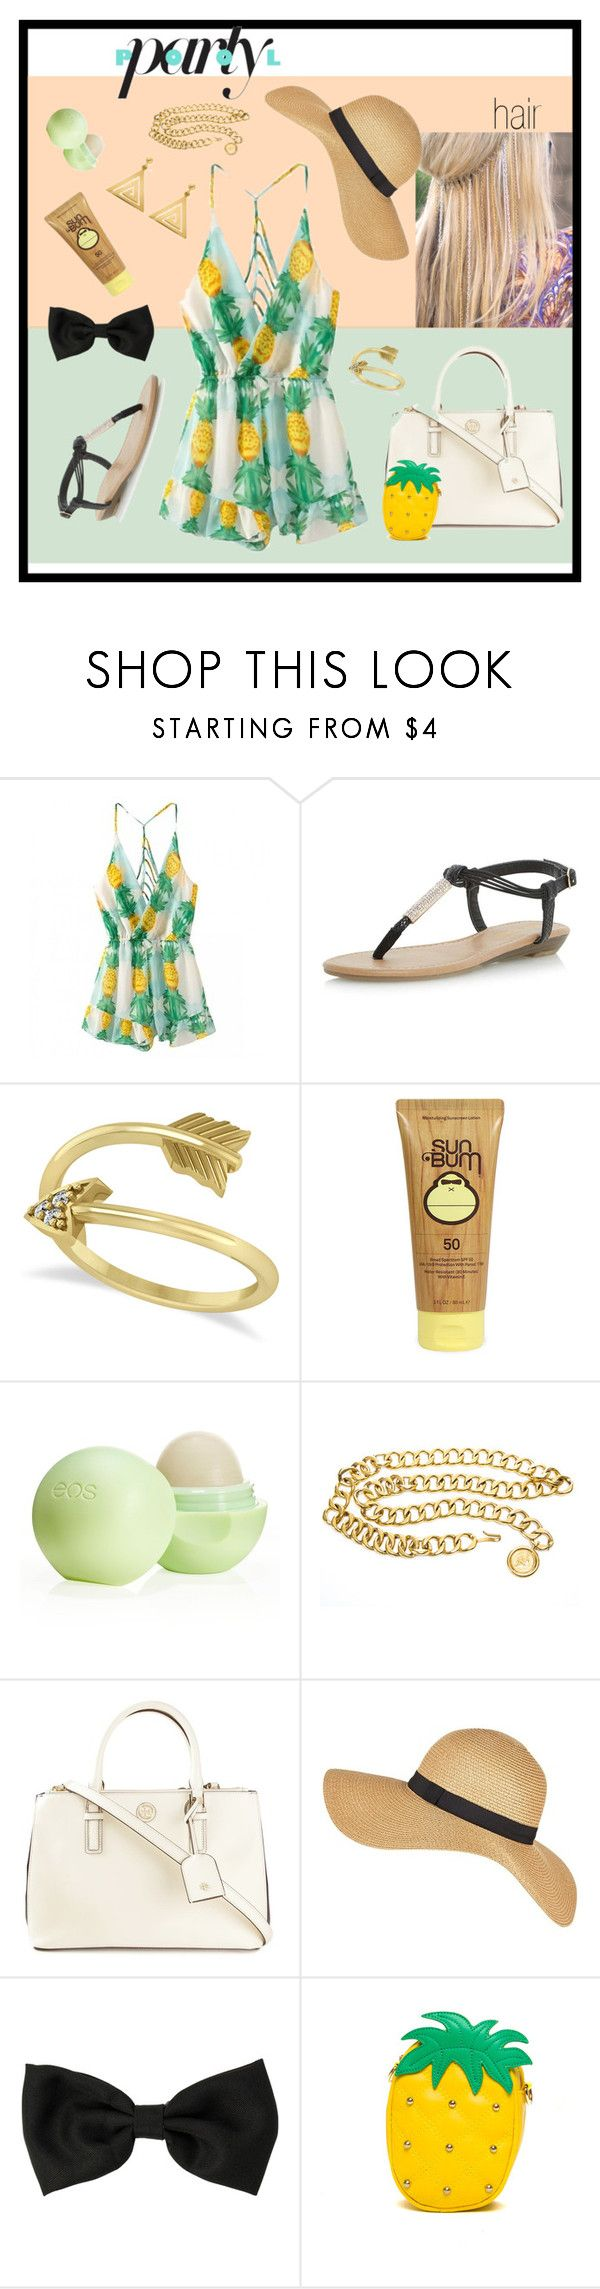 """""""Pineapple Themed Pool Party"""" by kokiorose ❤ liked on Polyvore featuring Dorothy Perkins, Allurez, Sun Bum, Eos, Chanel, Tory Burch, ChloBo, women's clothing, women and female"""